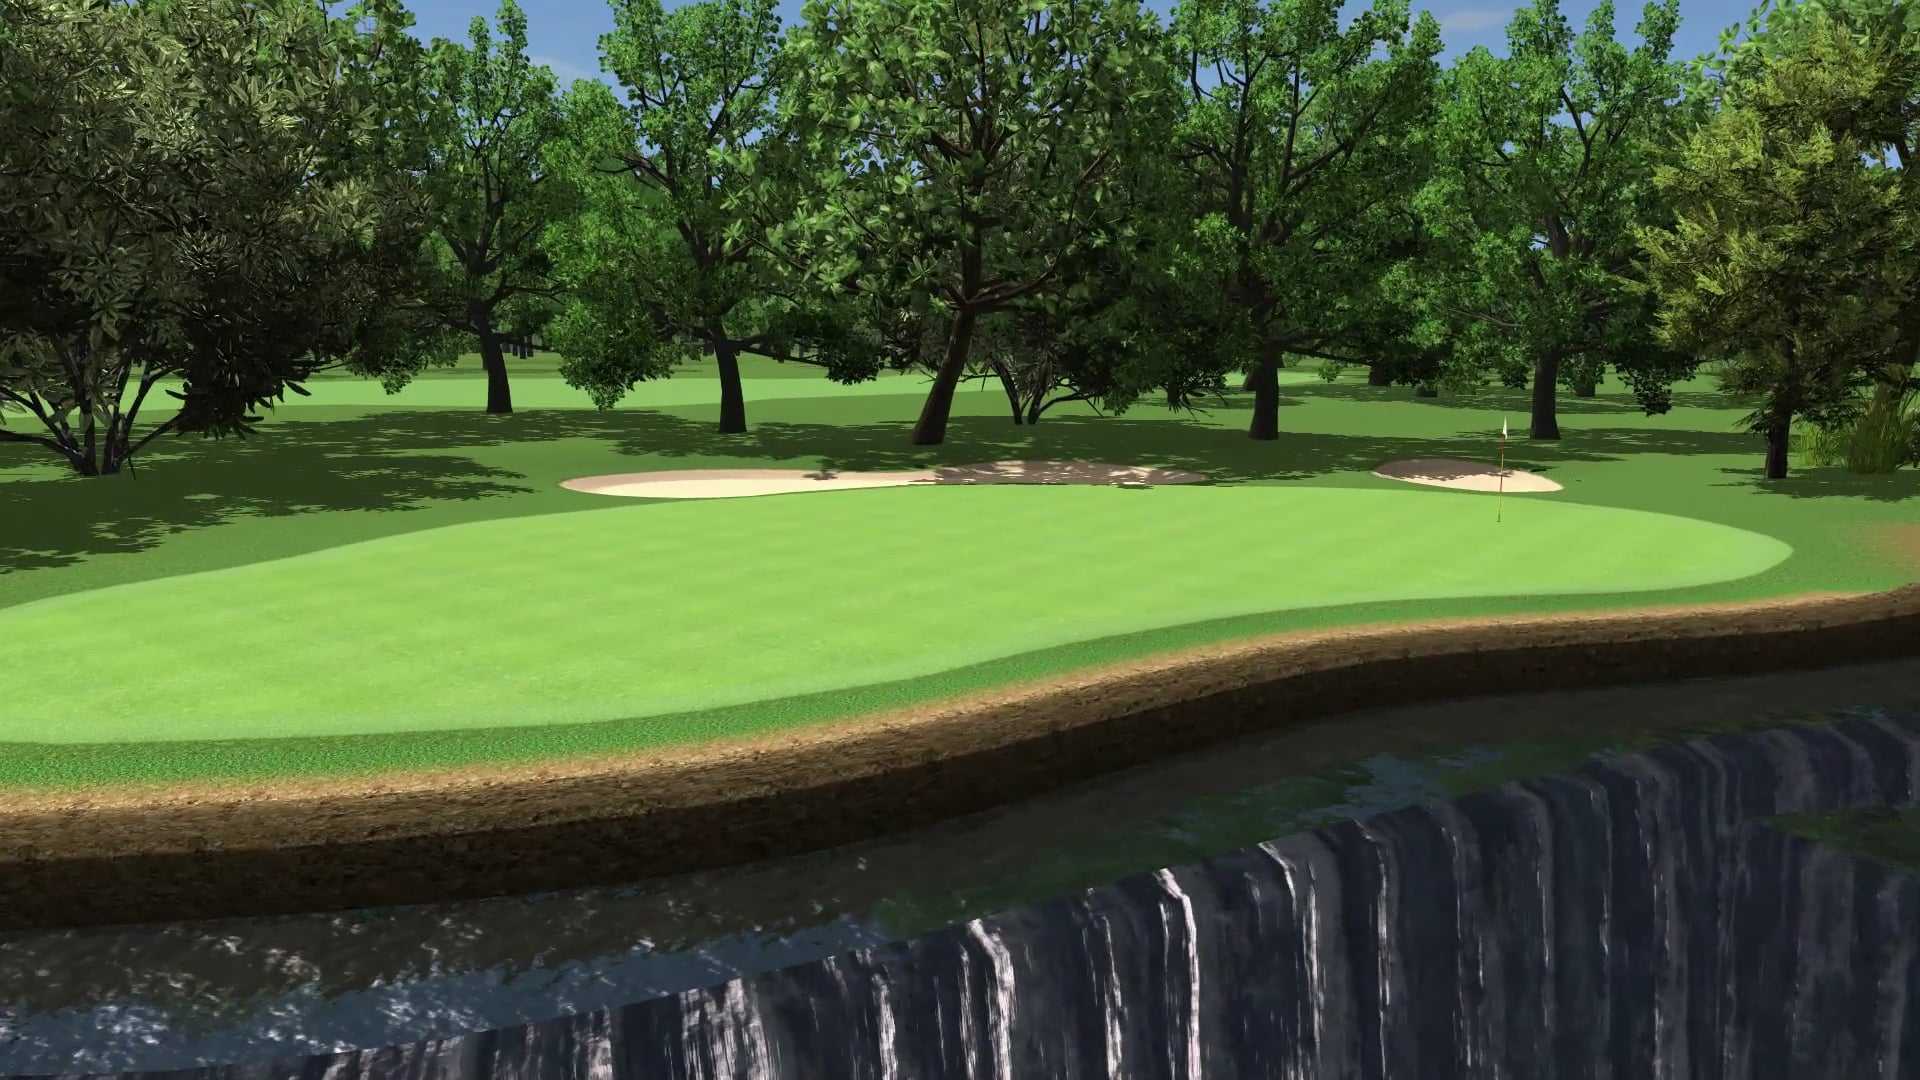 Week 10: 3-Hole Stroke Play - August 10th to August 16th